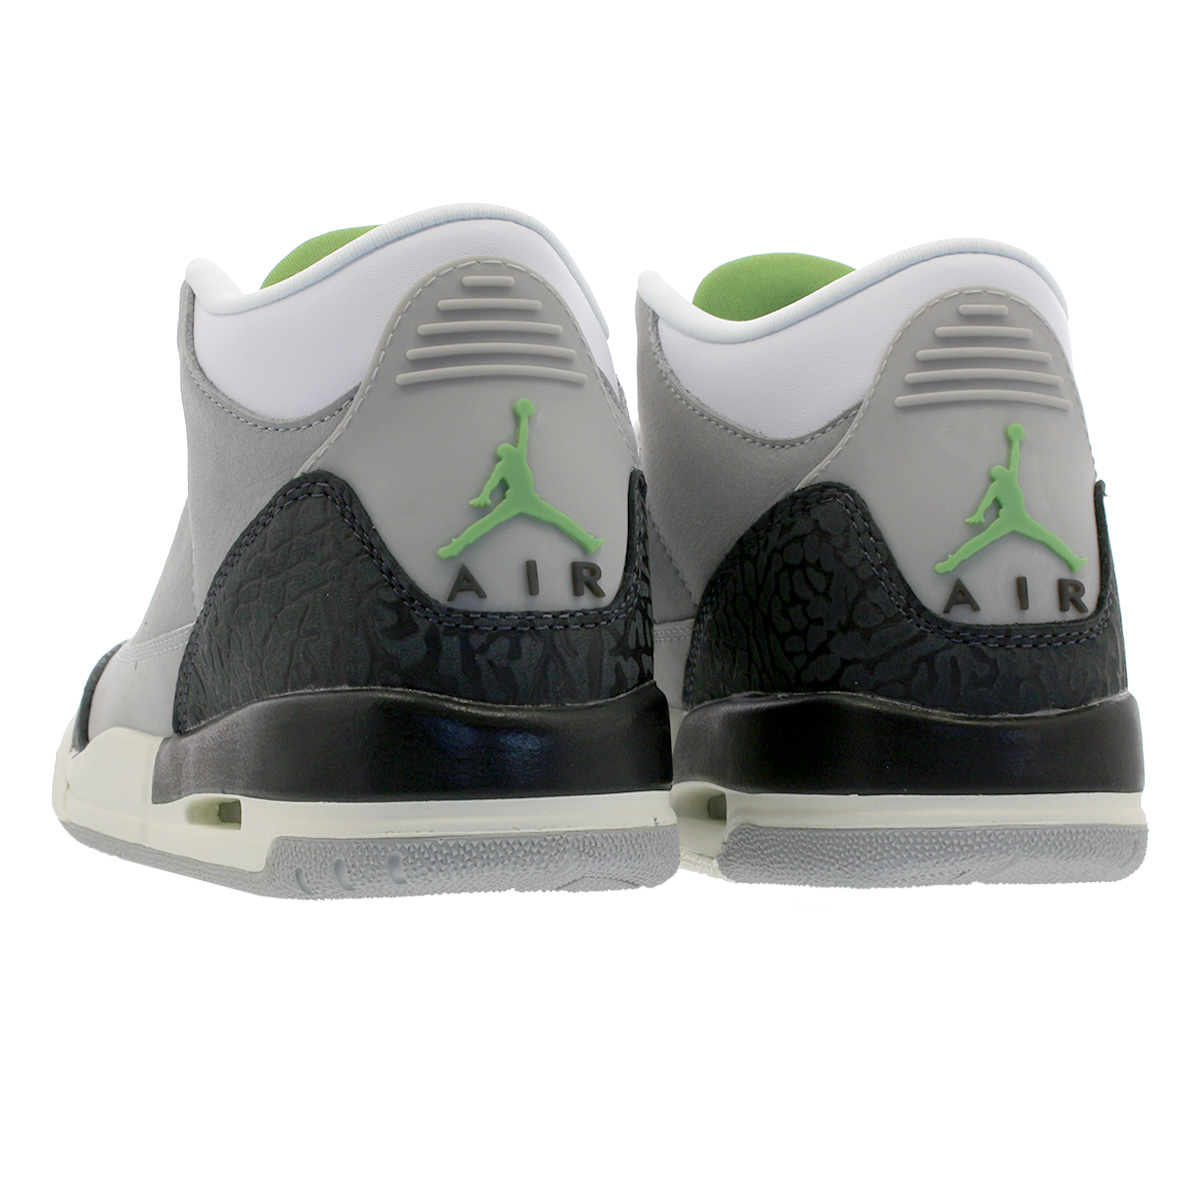 61726ea6295 ... NIKE AIR JORDAN 3 RETRO GS Nike air Jordan 3 nostalgic GS LIGHT SMOKE  GREY/ ...